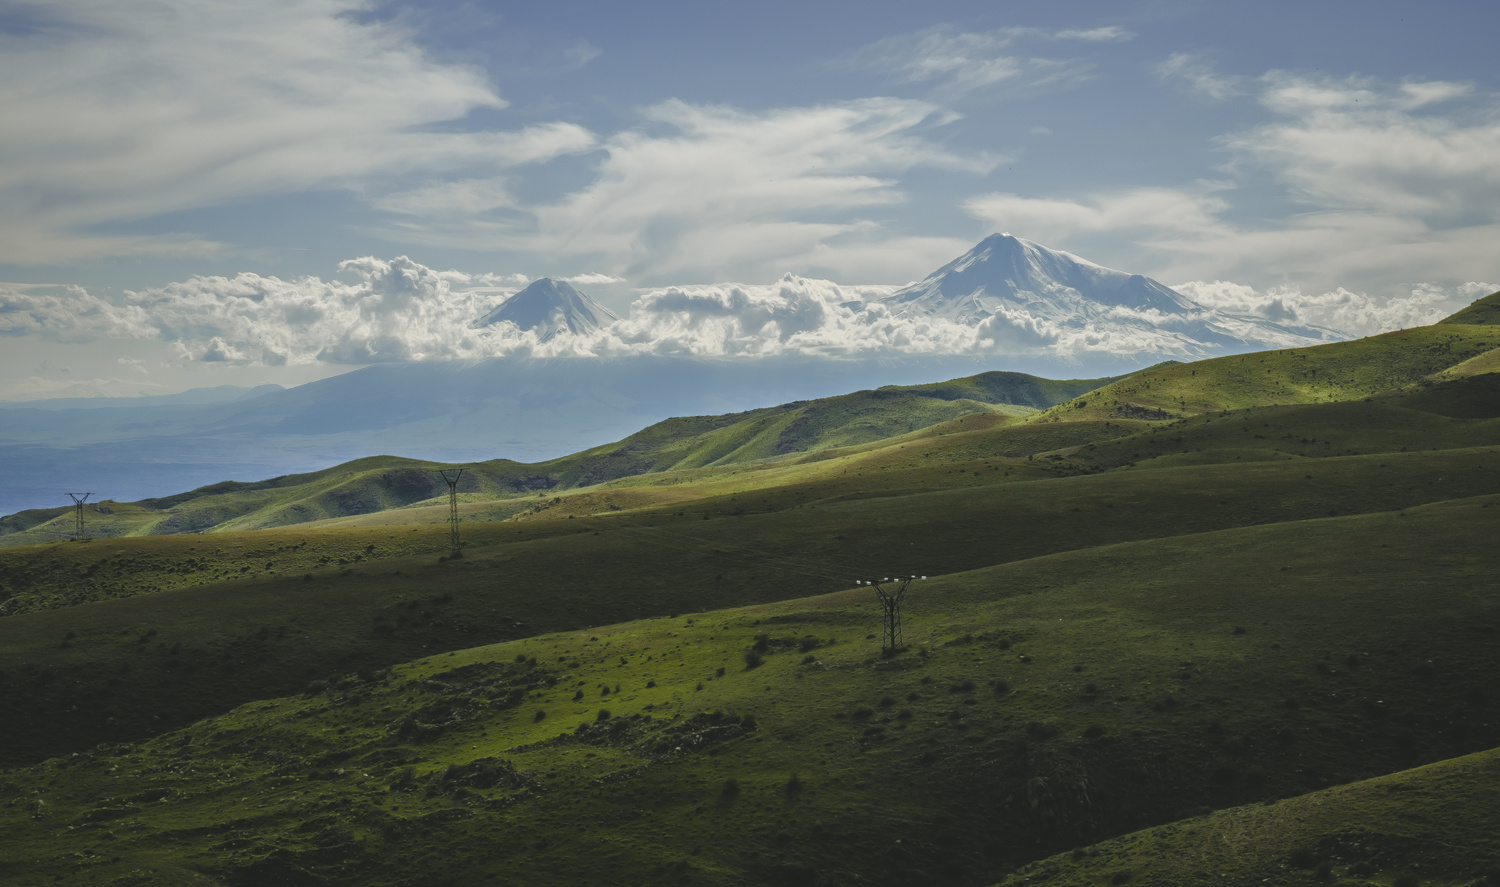 Ararat by andrew audley